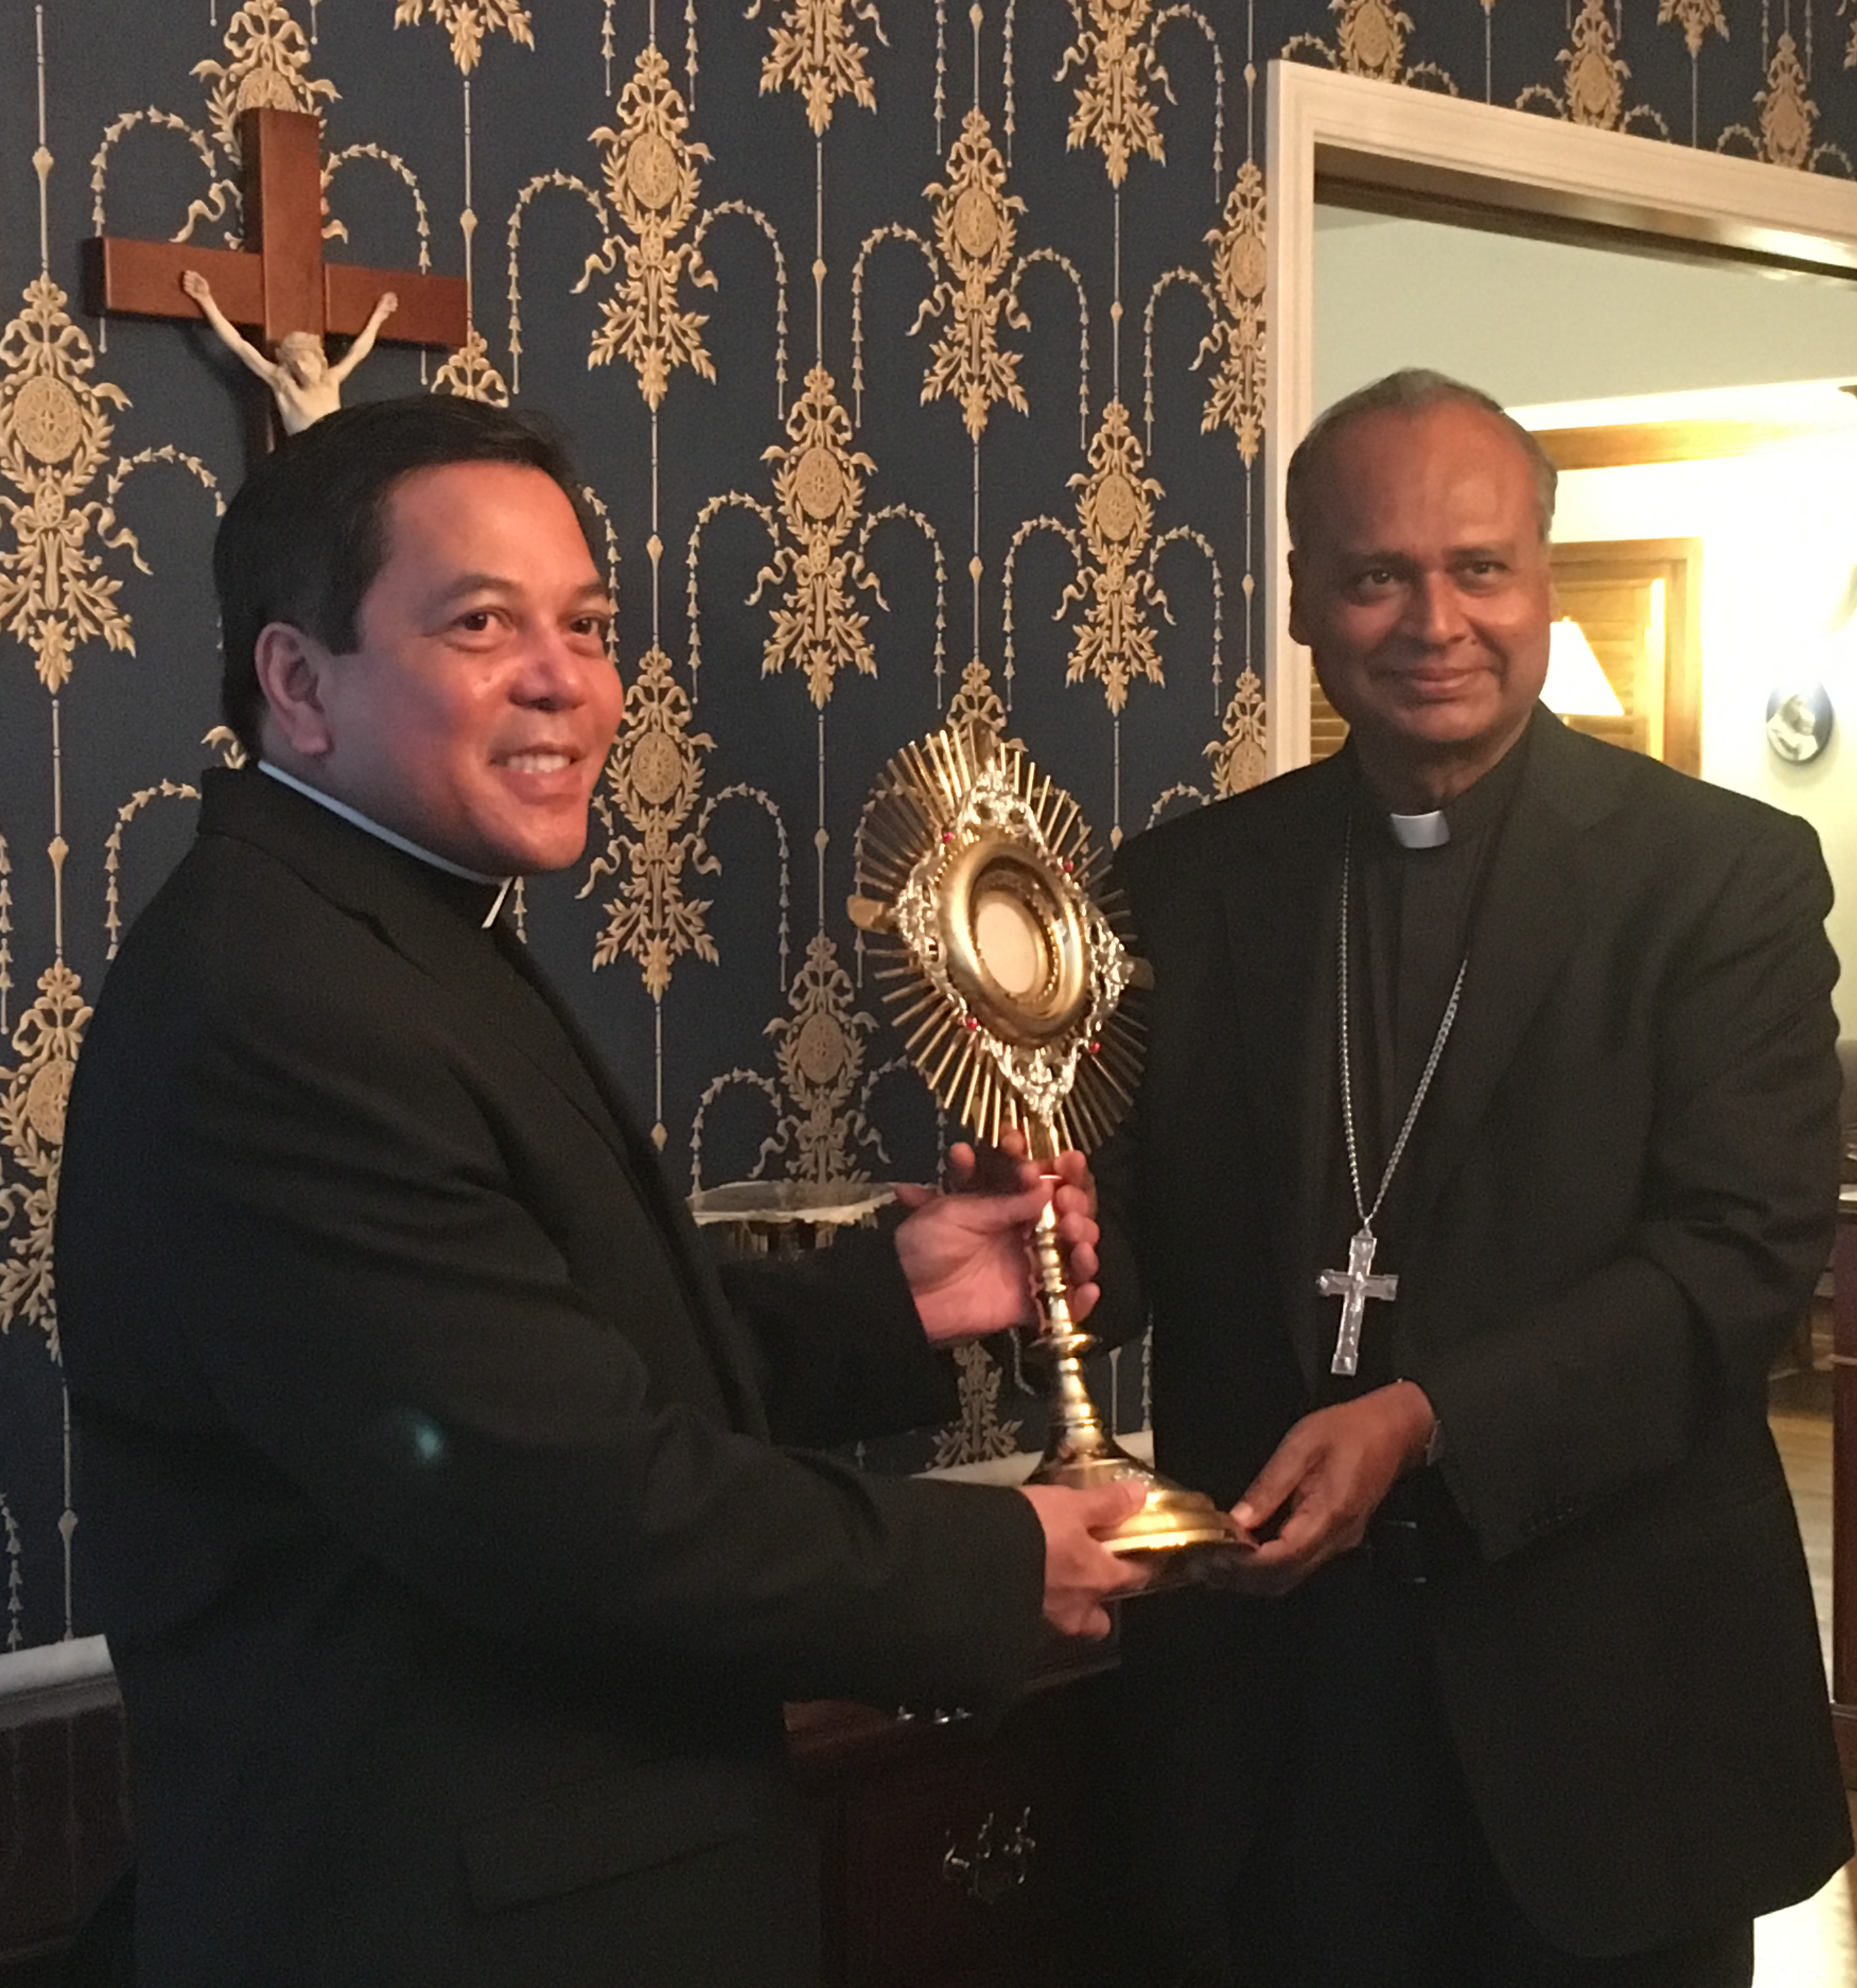 Atlanta, USA - Deacon Rick Medina presents Archbishop George Antonysamy of the Archdiocese of Madras and Mylapore with a new monstrance